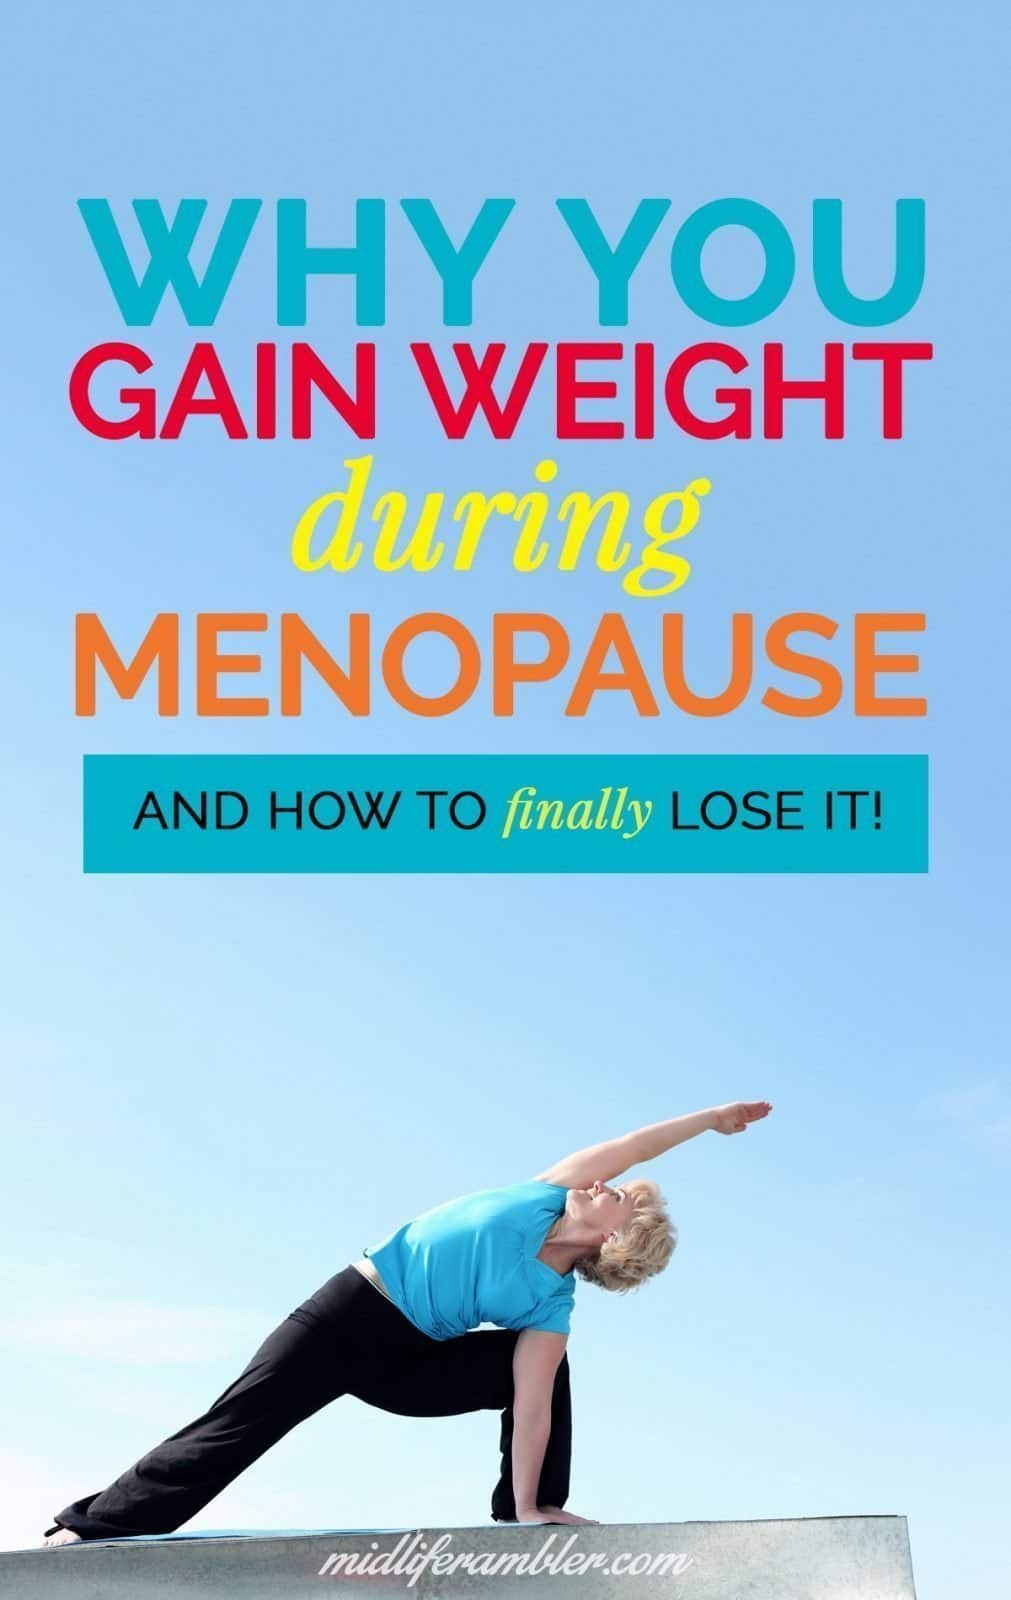 Menopausal Weight Gain: Why it Happens and How to Lose It 18